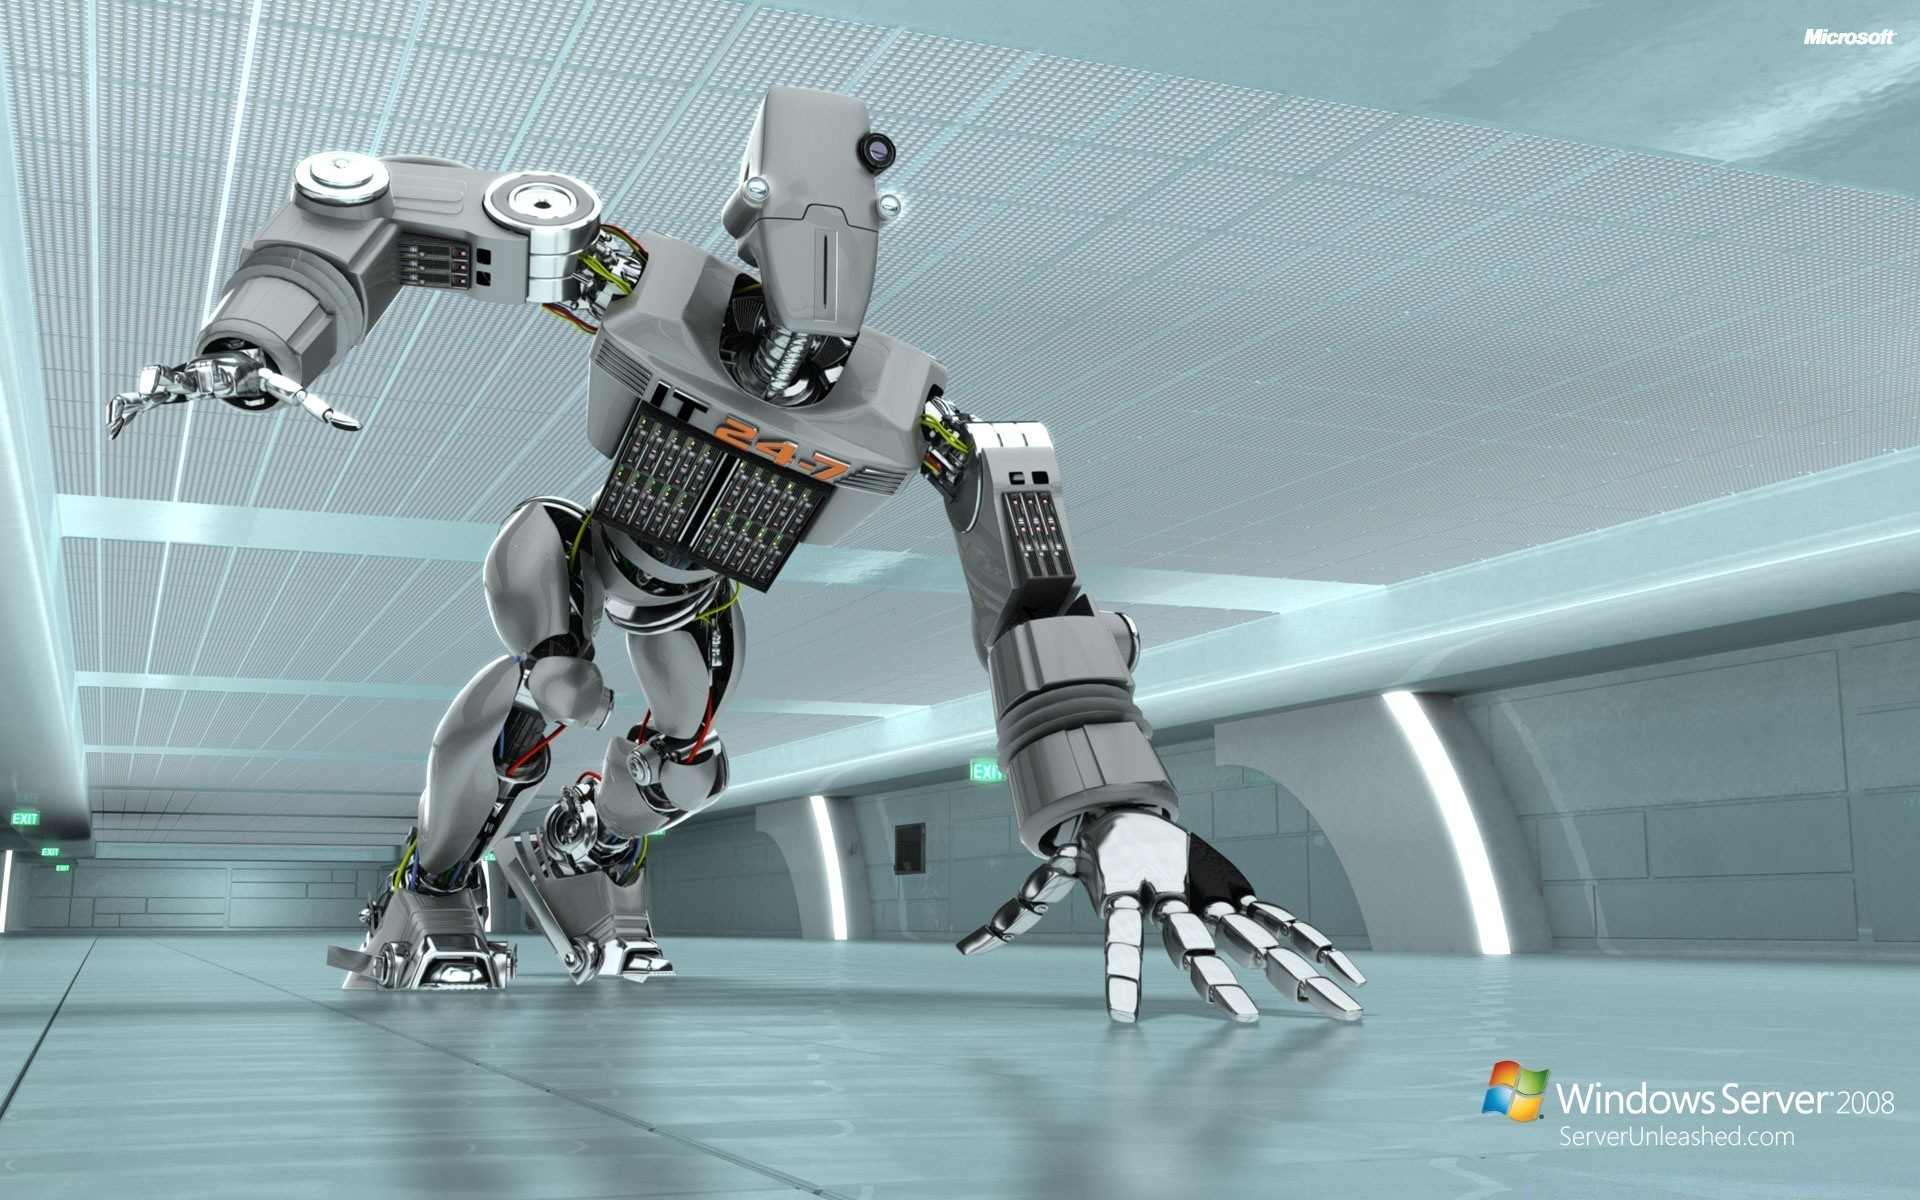 Res: 1920x1200,  Windows Server 2008 Unleashed IT 24-7 Robot. Android wallpapers  for free. Download ·  Windows Server ...